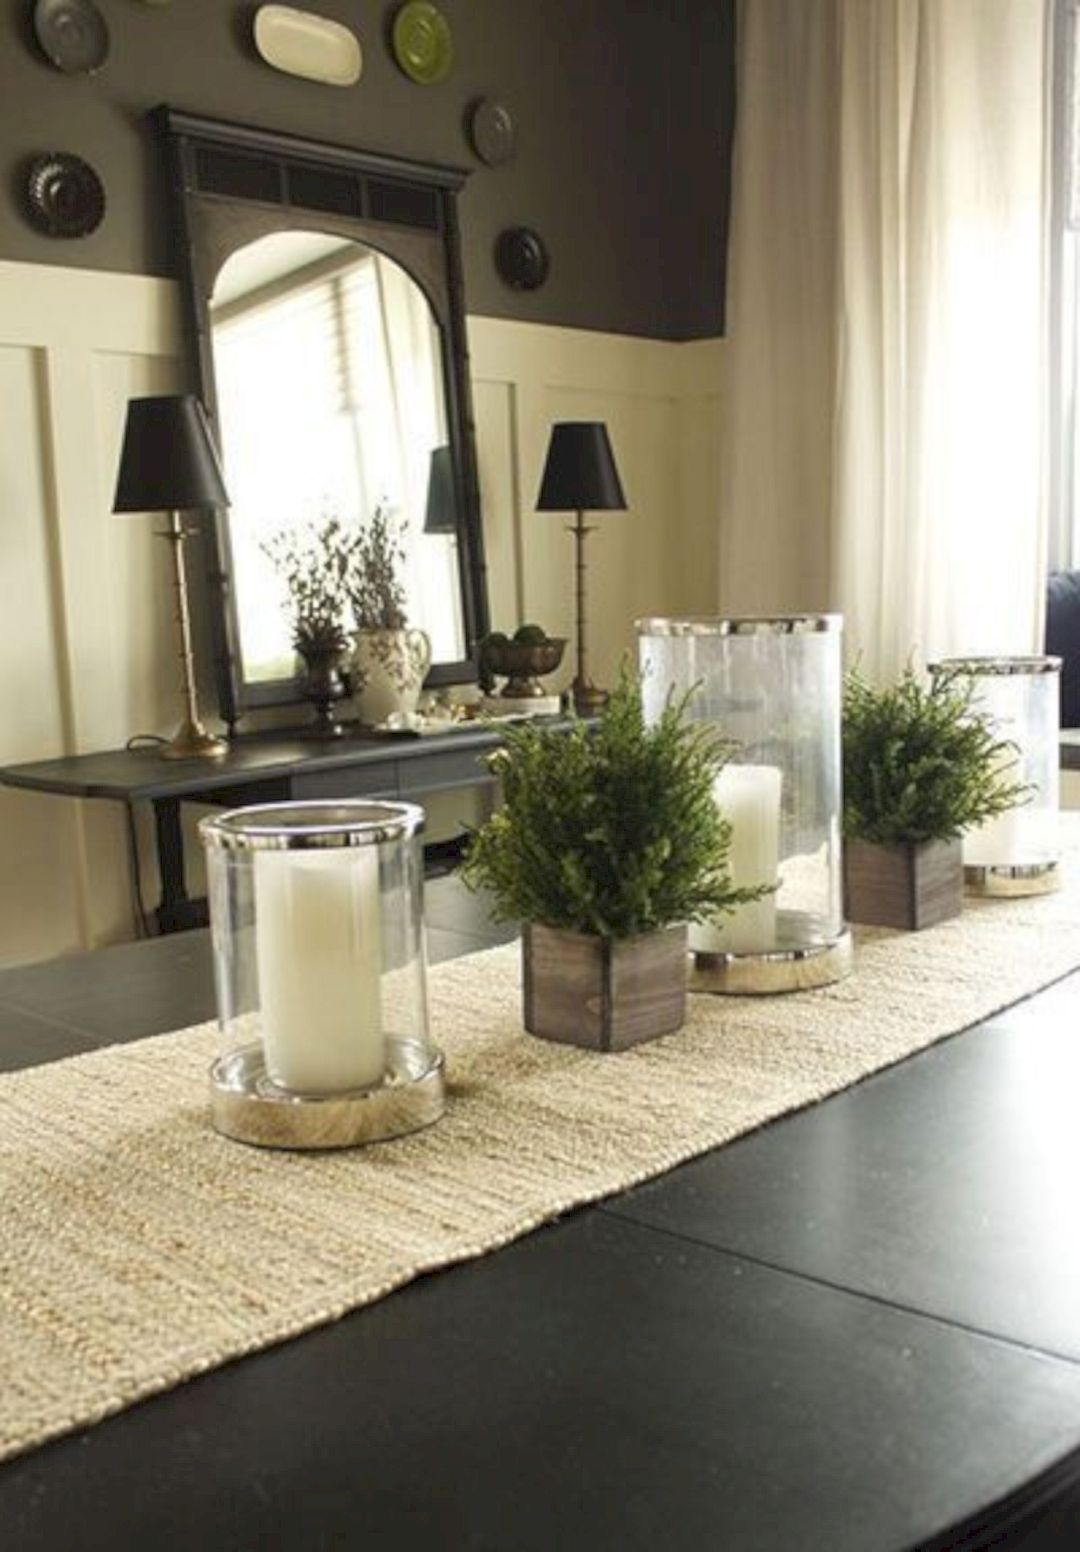 5 Best Dining Room Decorating Ideas Dining Room Centerpiece Dining Room Table Centerpieces Table Centerpieces For Home